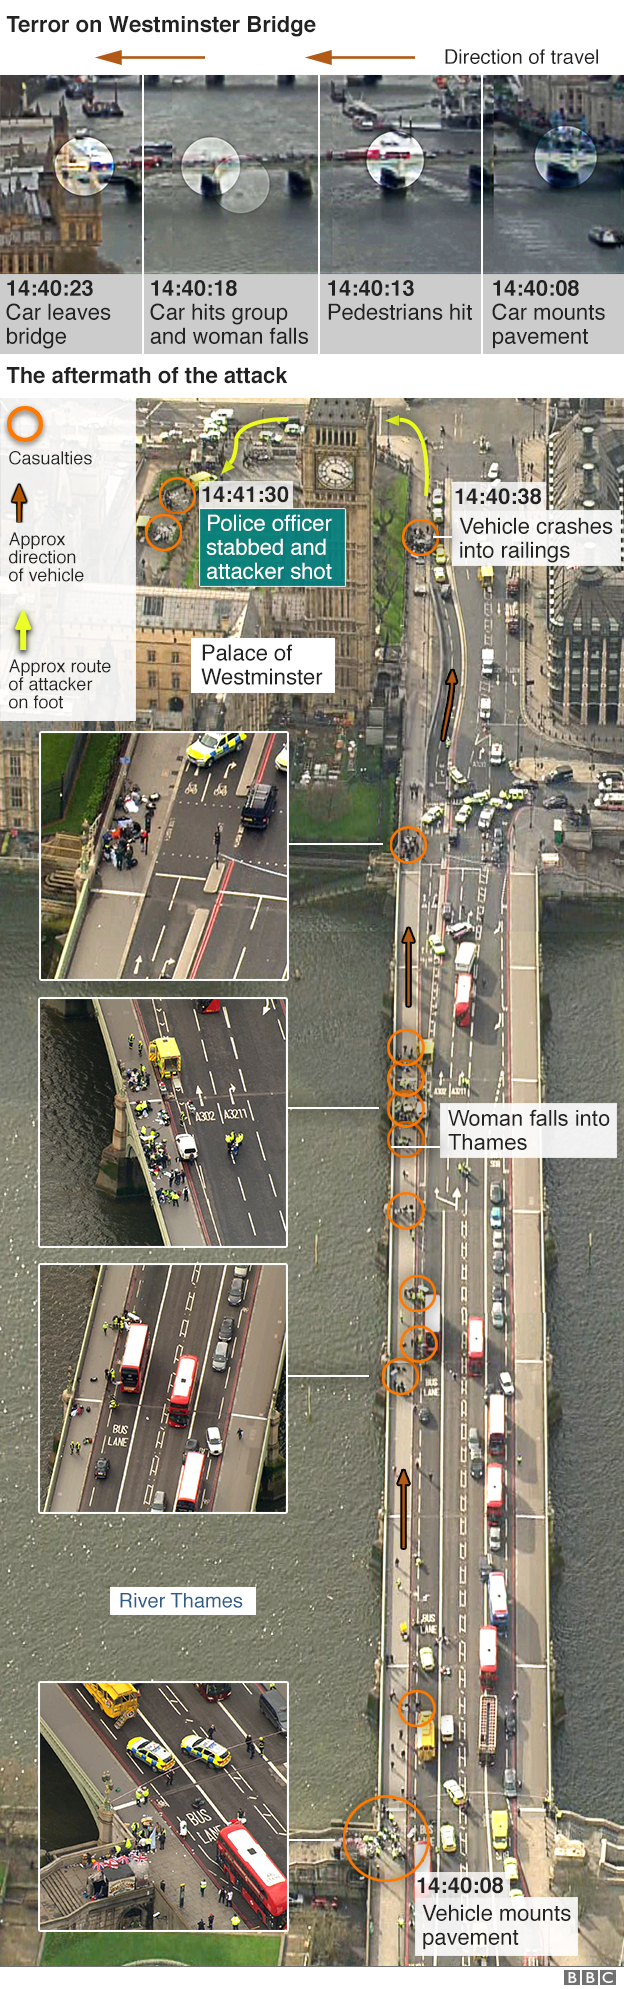 Graphic: How the attack unfolded